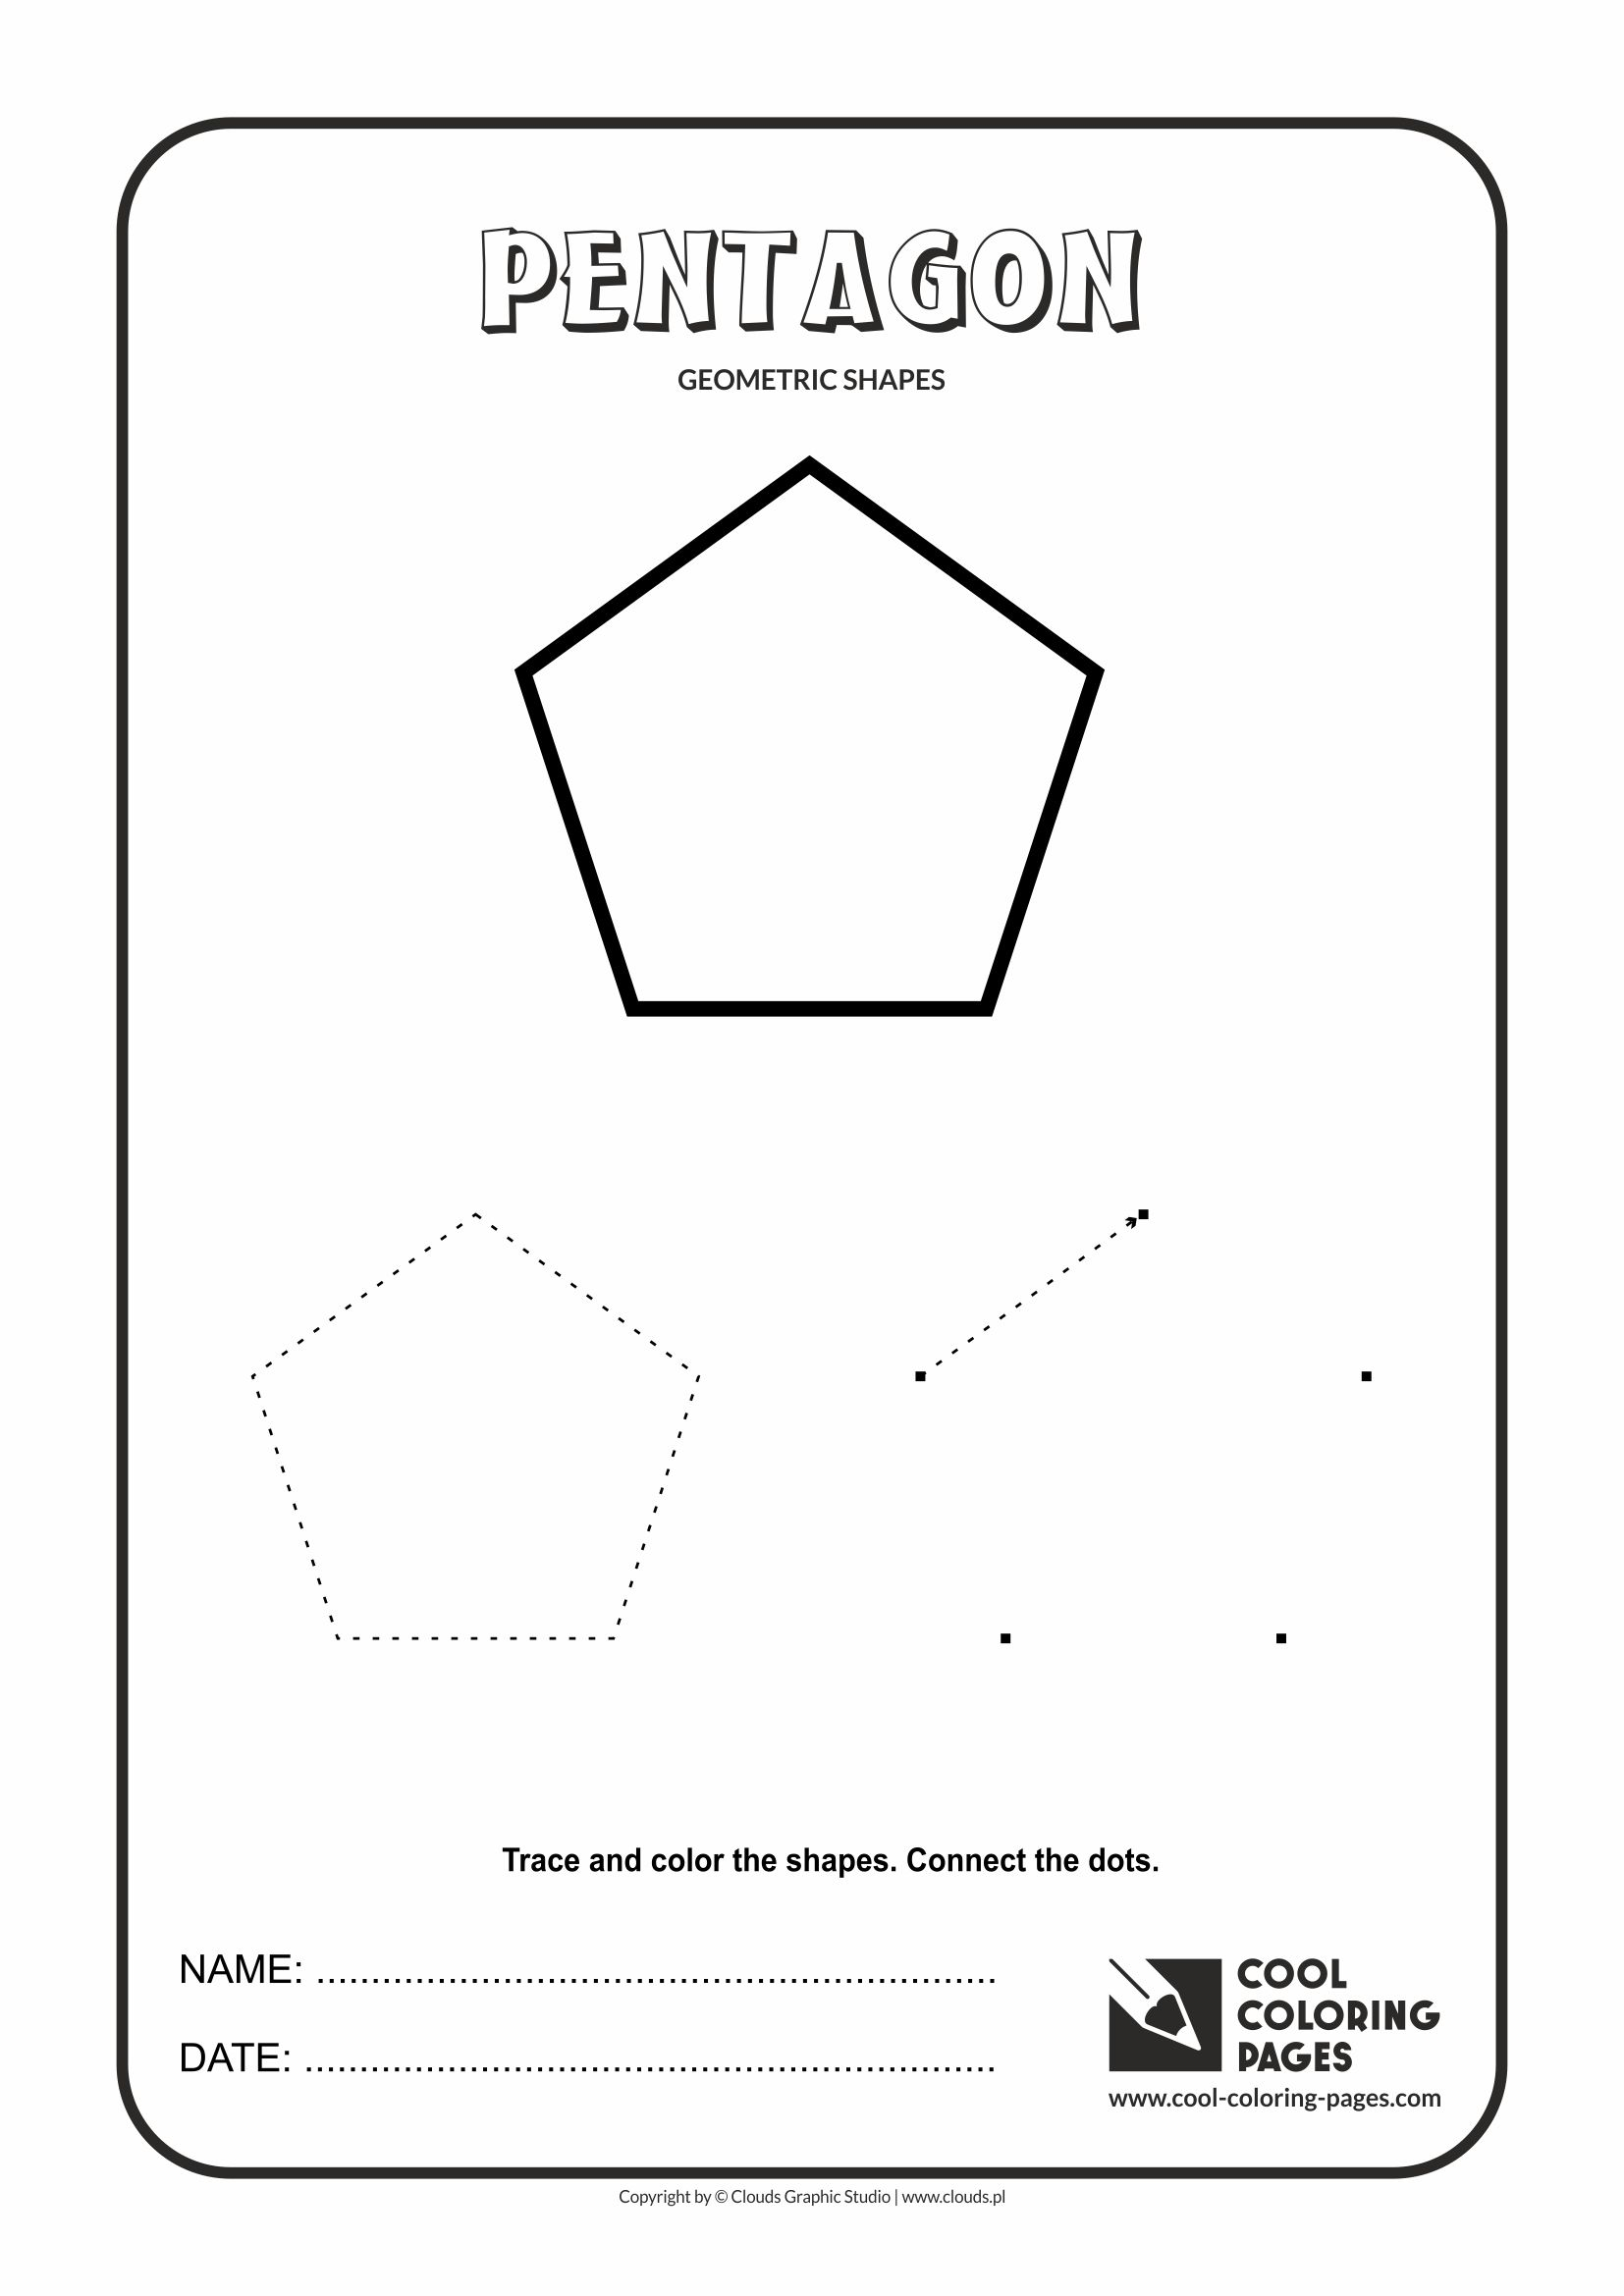 Cool Coloring Pages - Geometric shapes / Pentagon